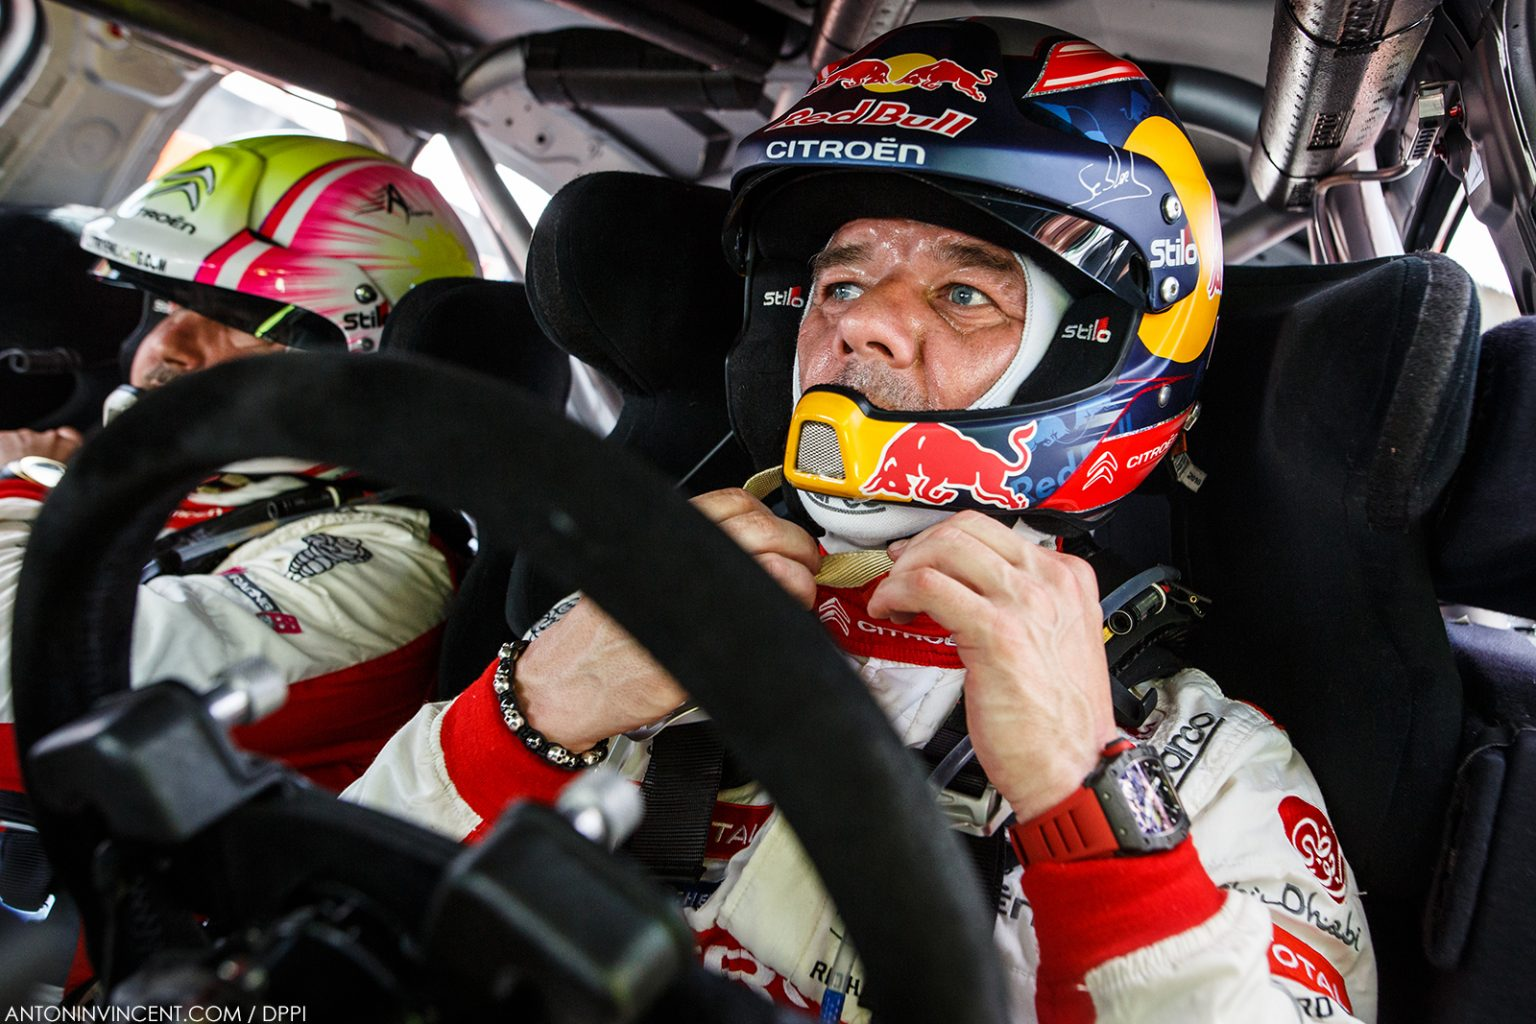 LOEB Sebastien (FRA), CITROEN C3 WRC, CITROEN TOTAL ABU DHABI WRT  portrait during the 2018 WRC World Rally Car Championship, Tour de Corse rally from April 5 to 8 at Ajaccio, France - Photo Antonin Vincent / DPPI